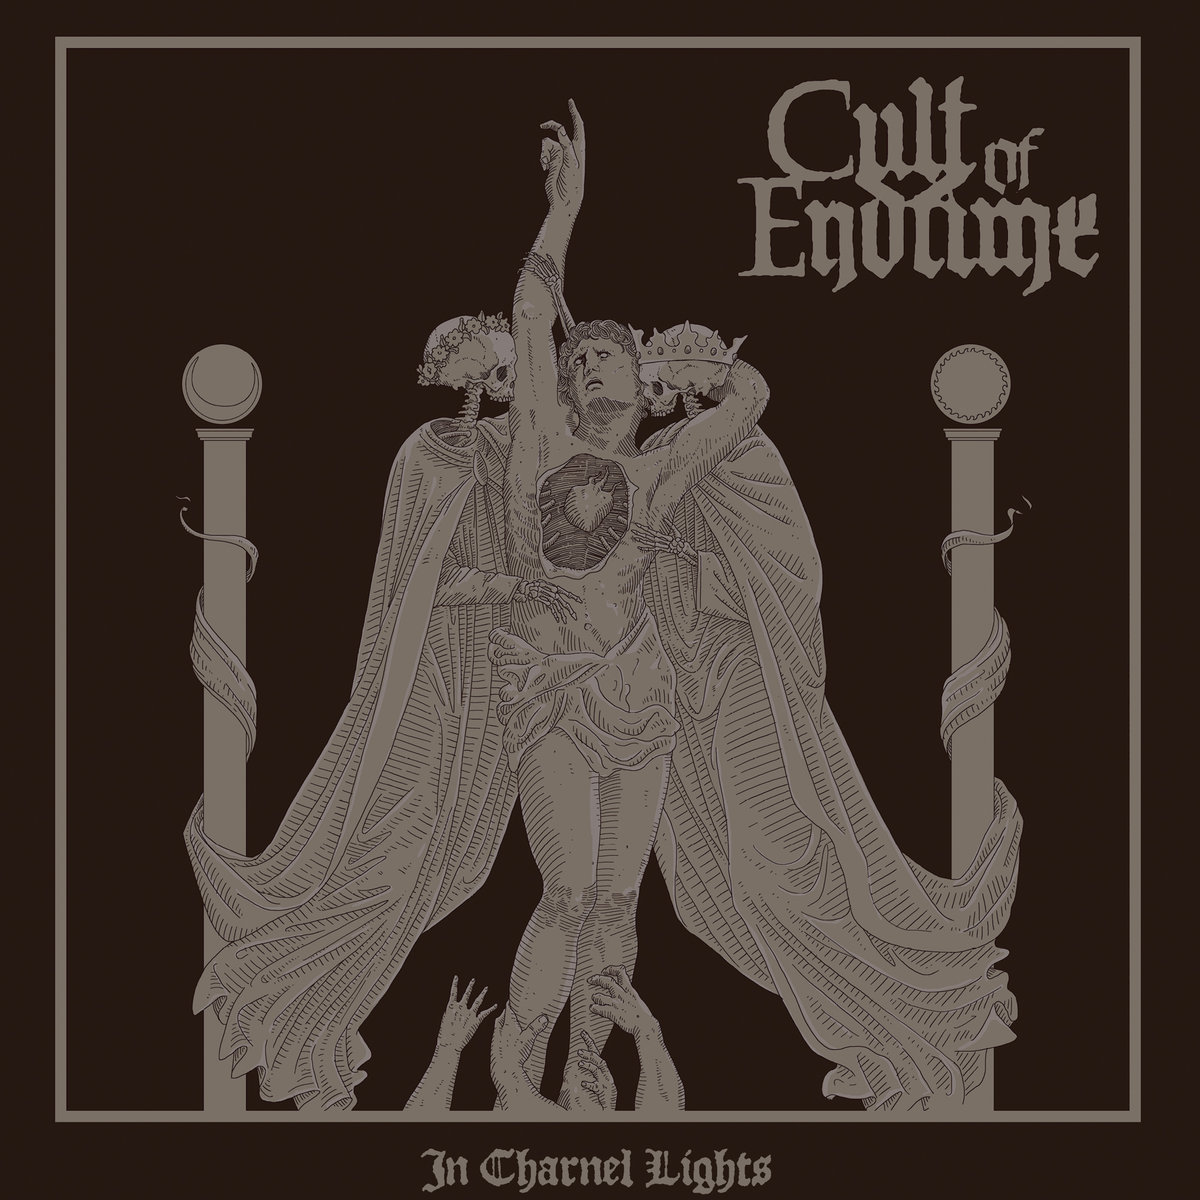 Cult Of Endtime - In Charnel Lights - 2015